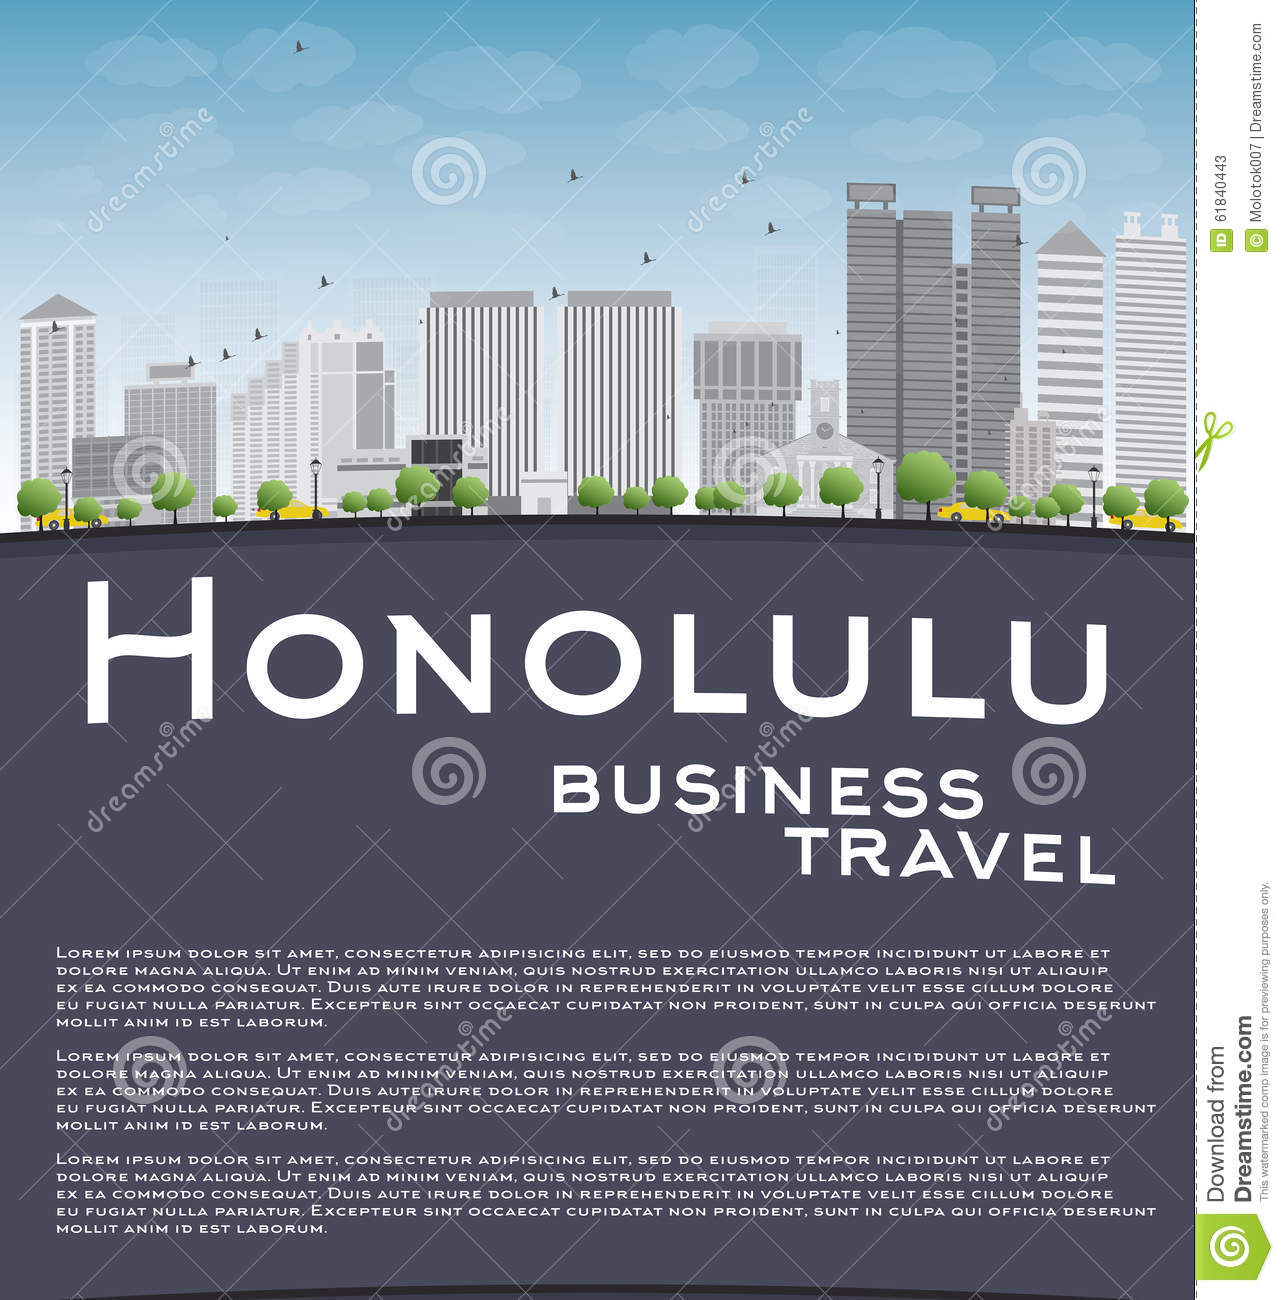 Business cards business cards honolulu business cards honolulu reheart Images